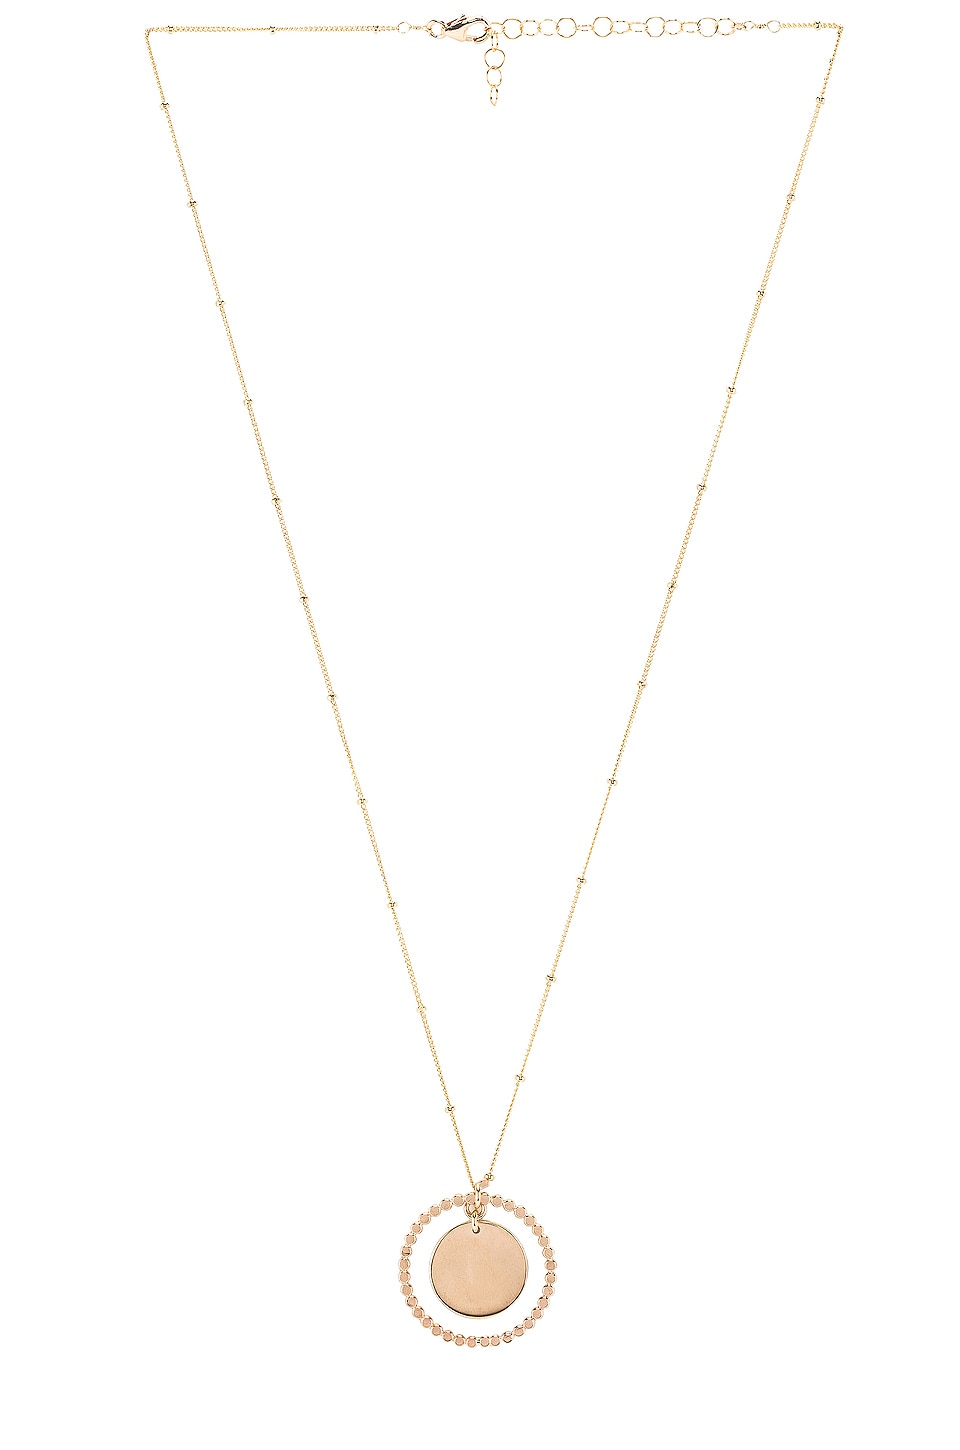 Paradigm Stars Align Coin Pendant Necklace in Gold